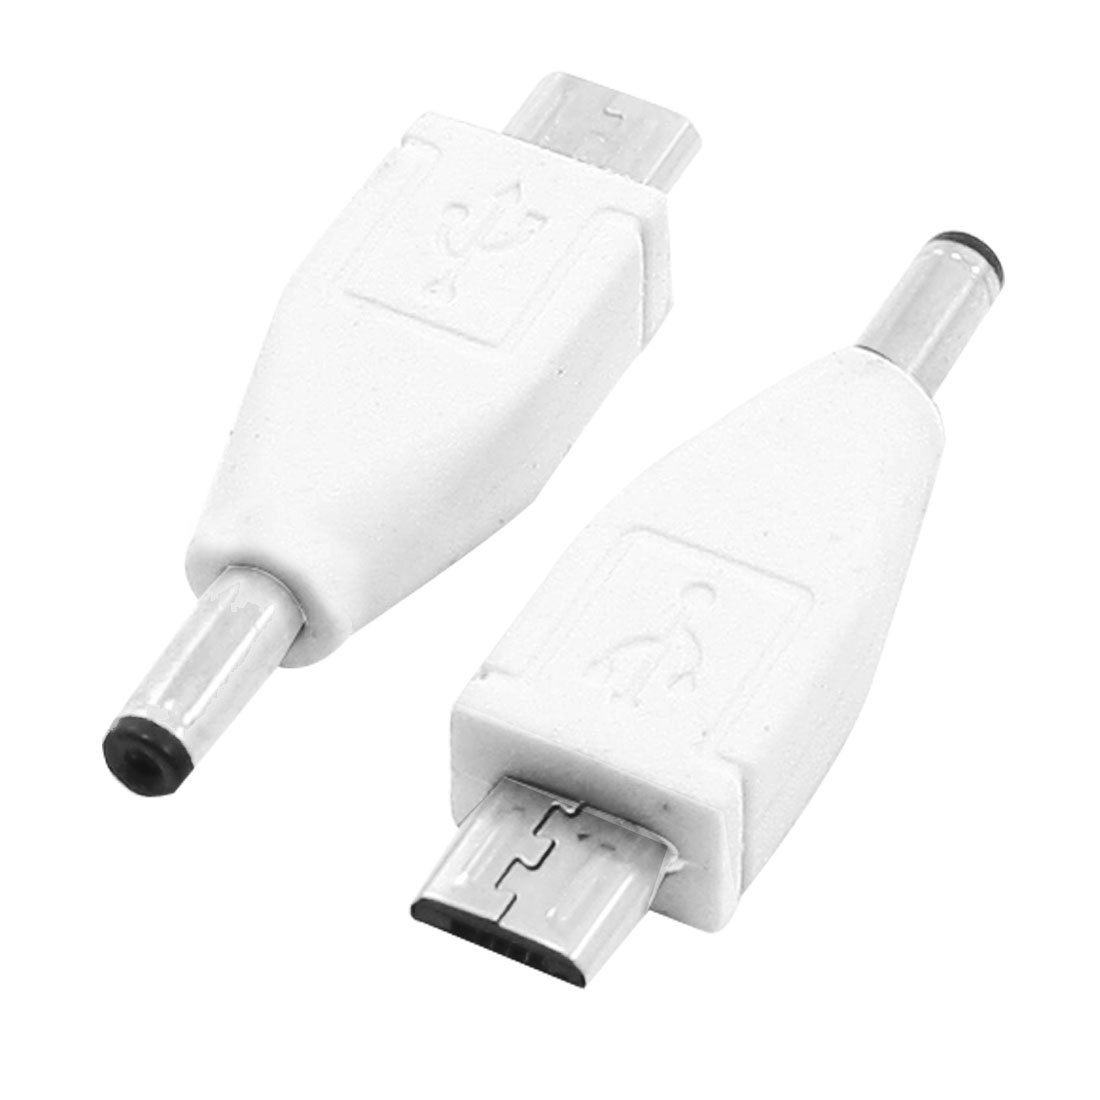 2 Pieces DC 3.5mm Male to B Type Micro USB Male Power Charger Adapter